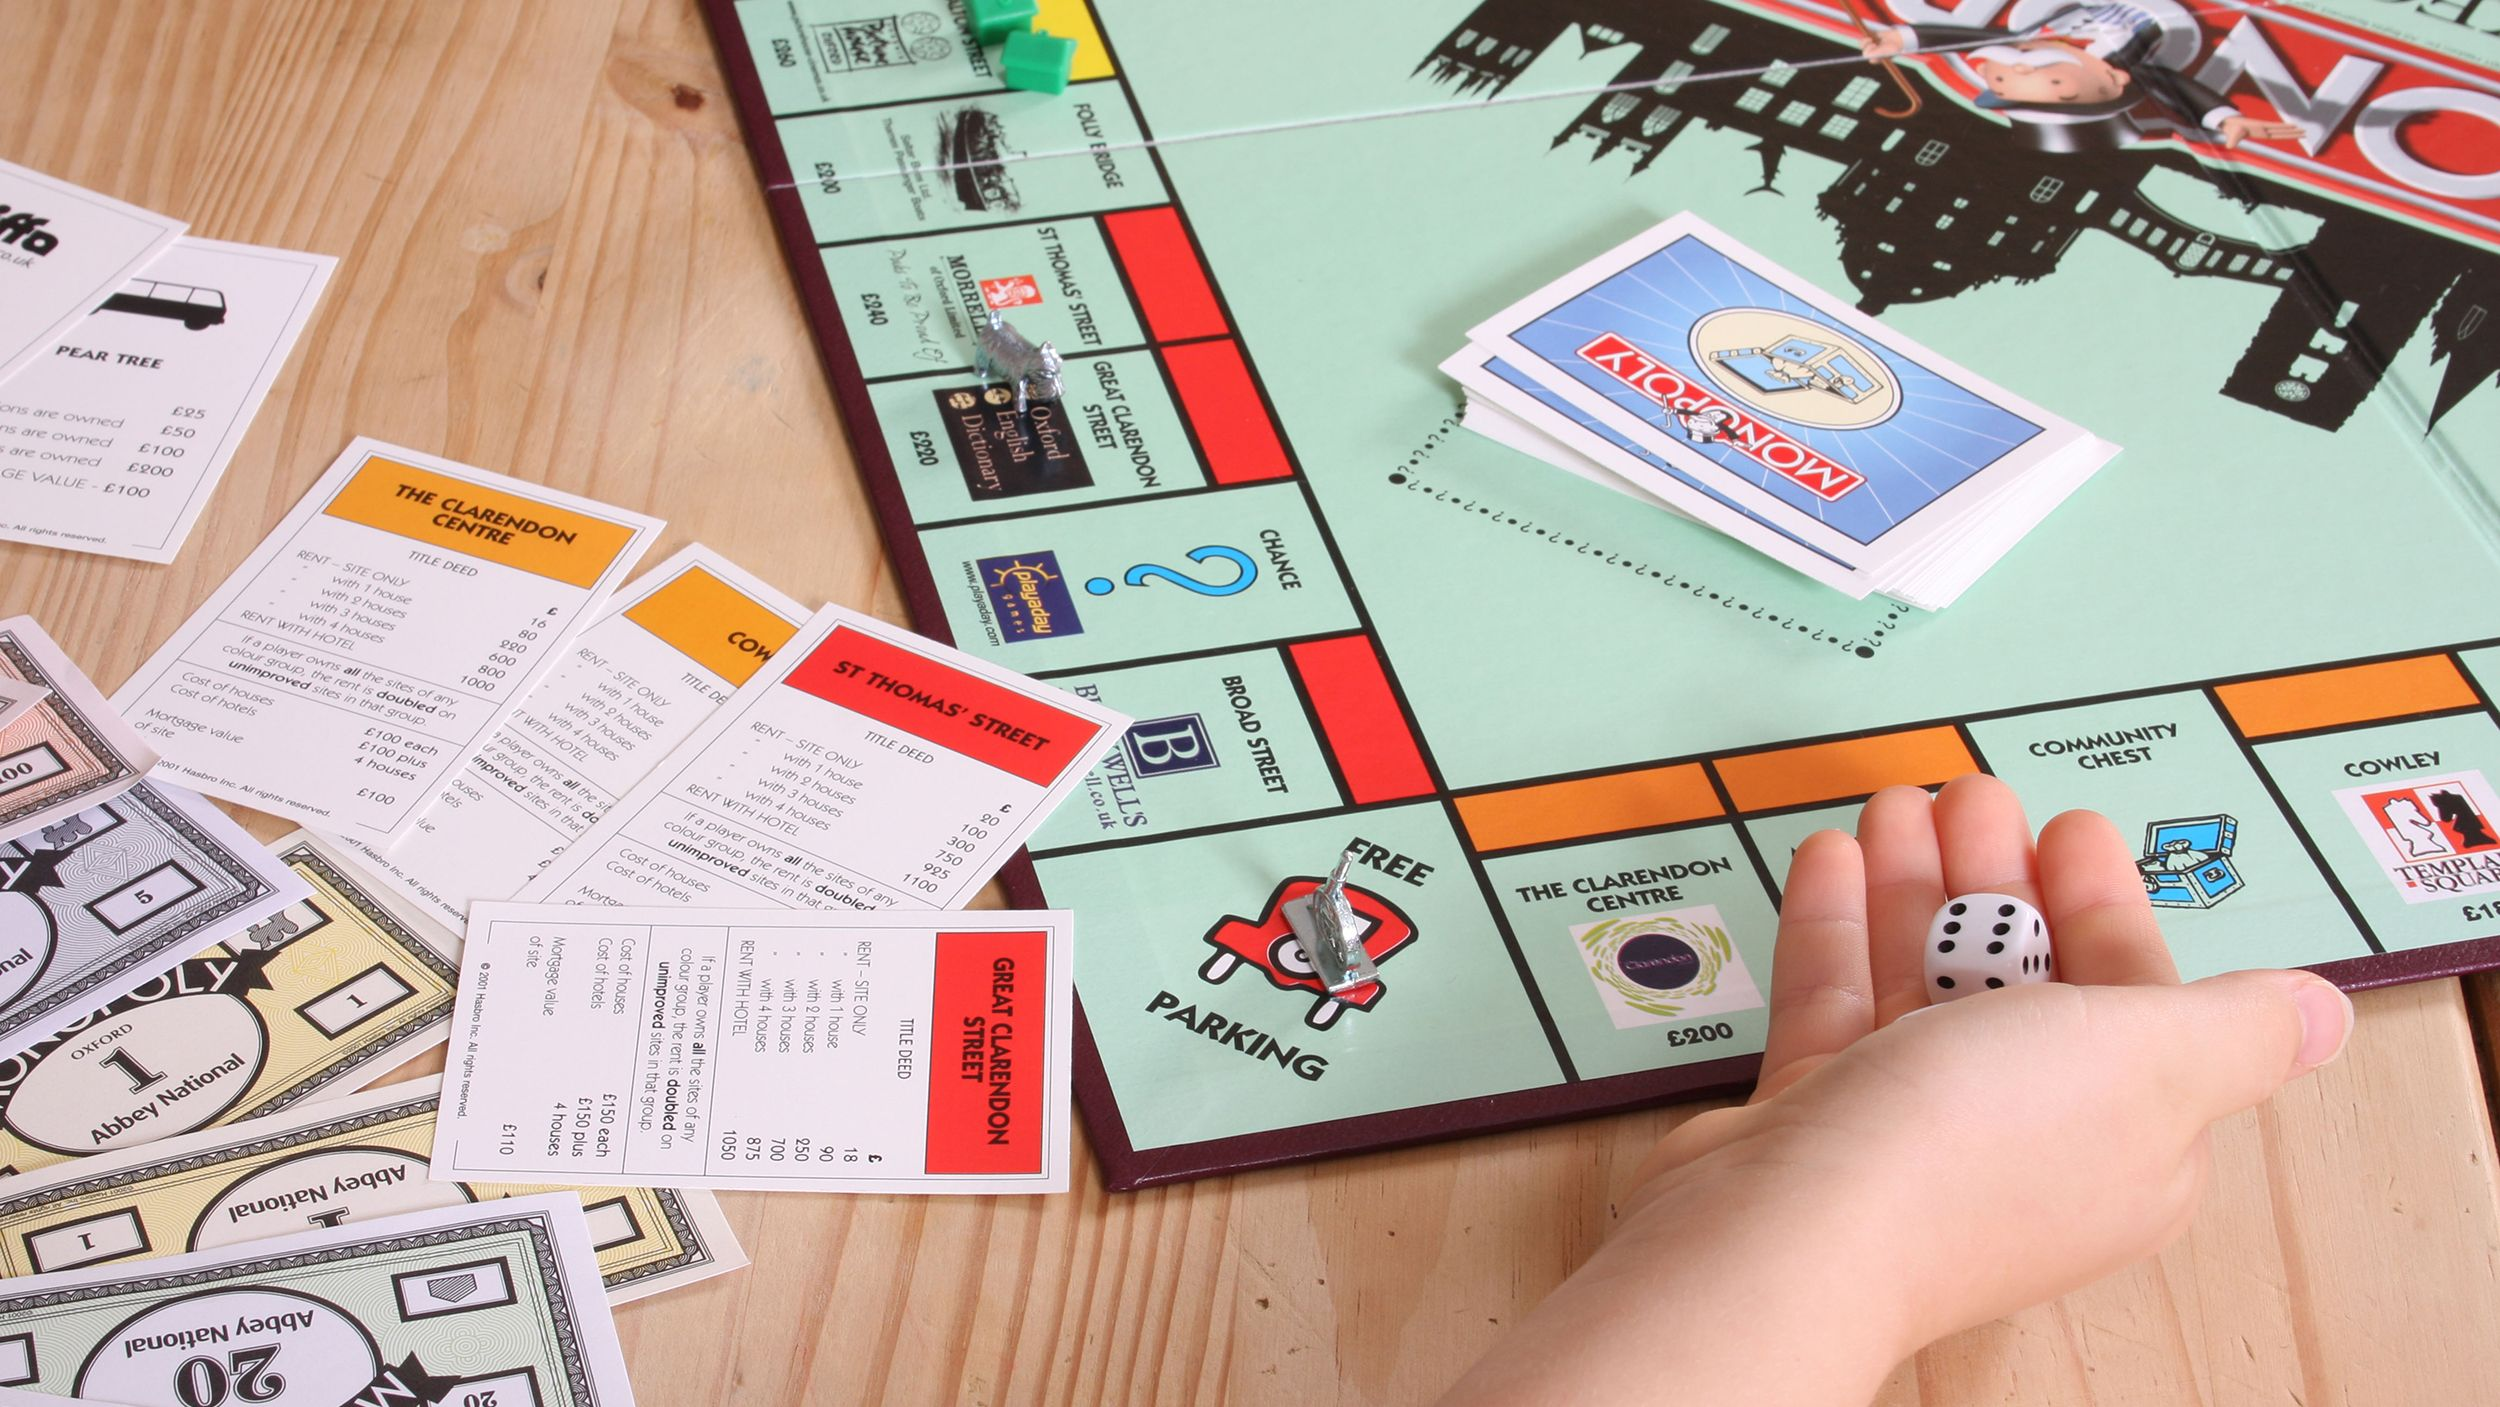 Which Board Game Should You Play Based On Your Myers-Briggs